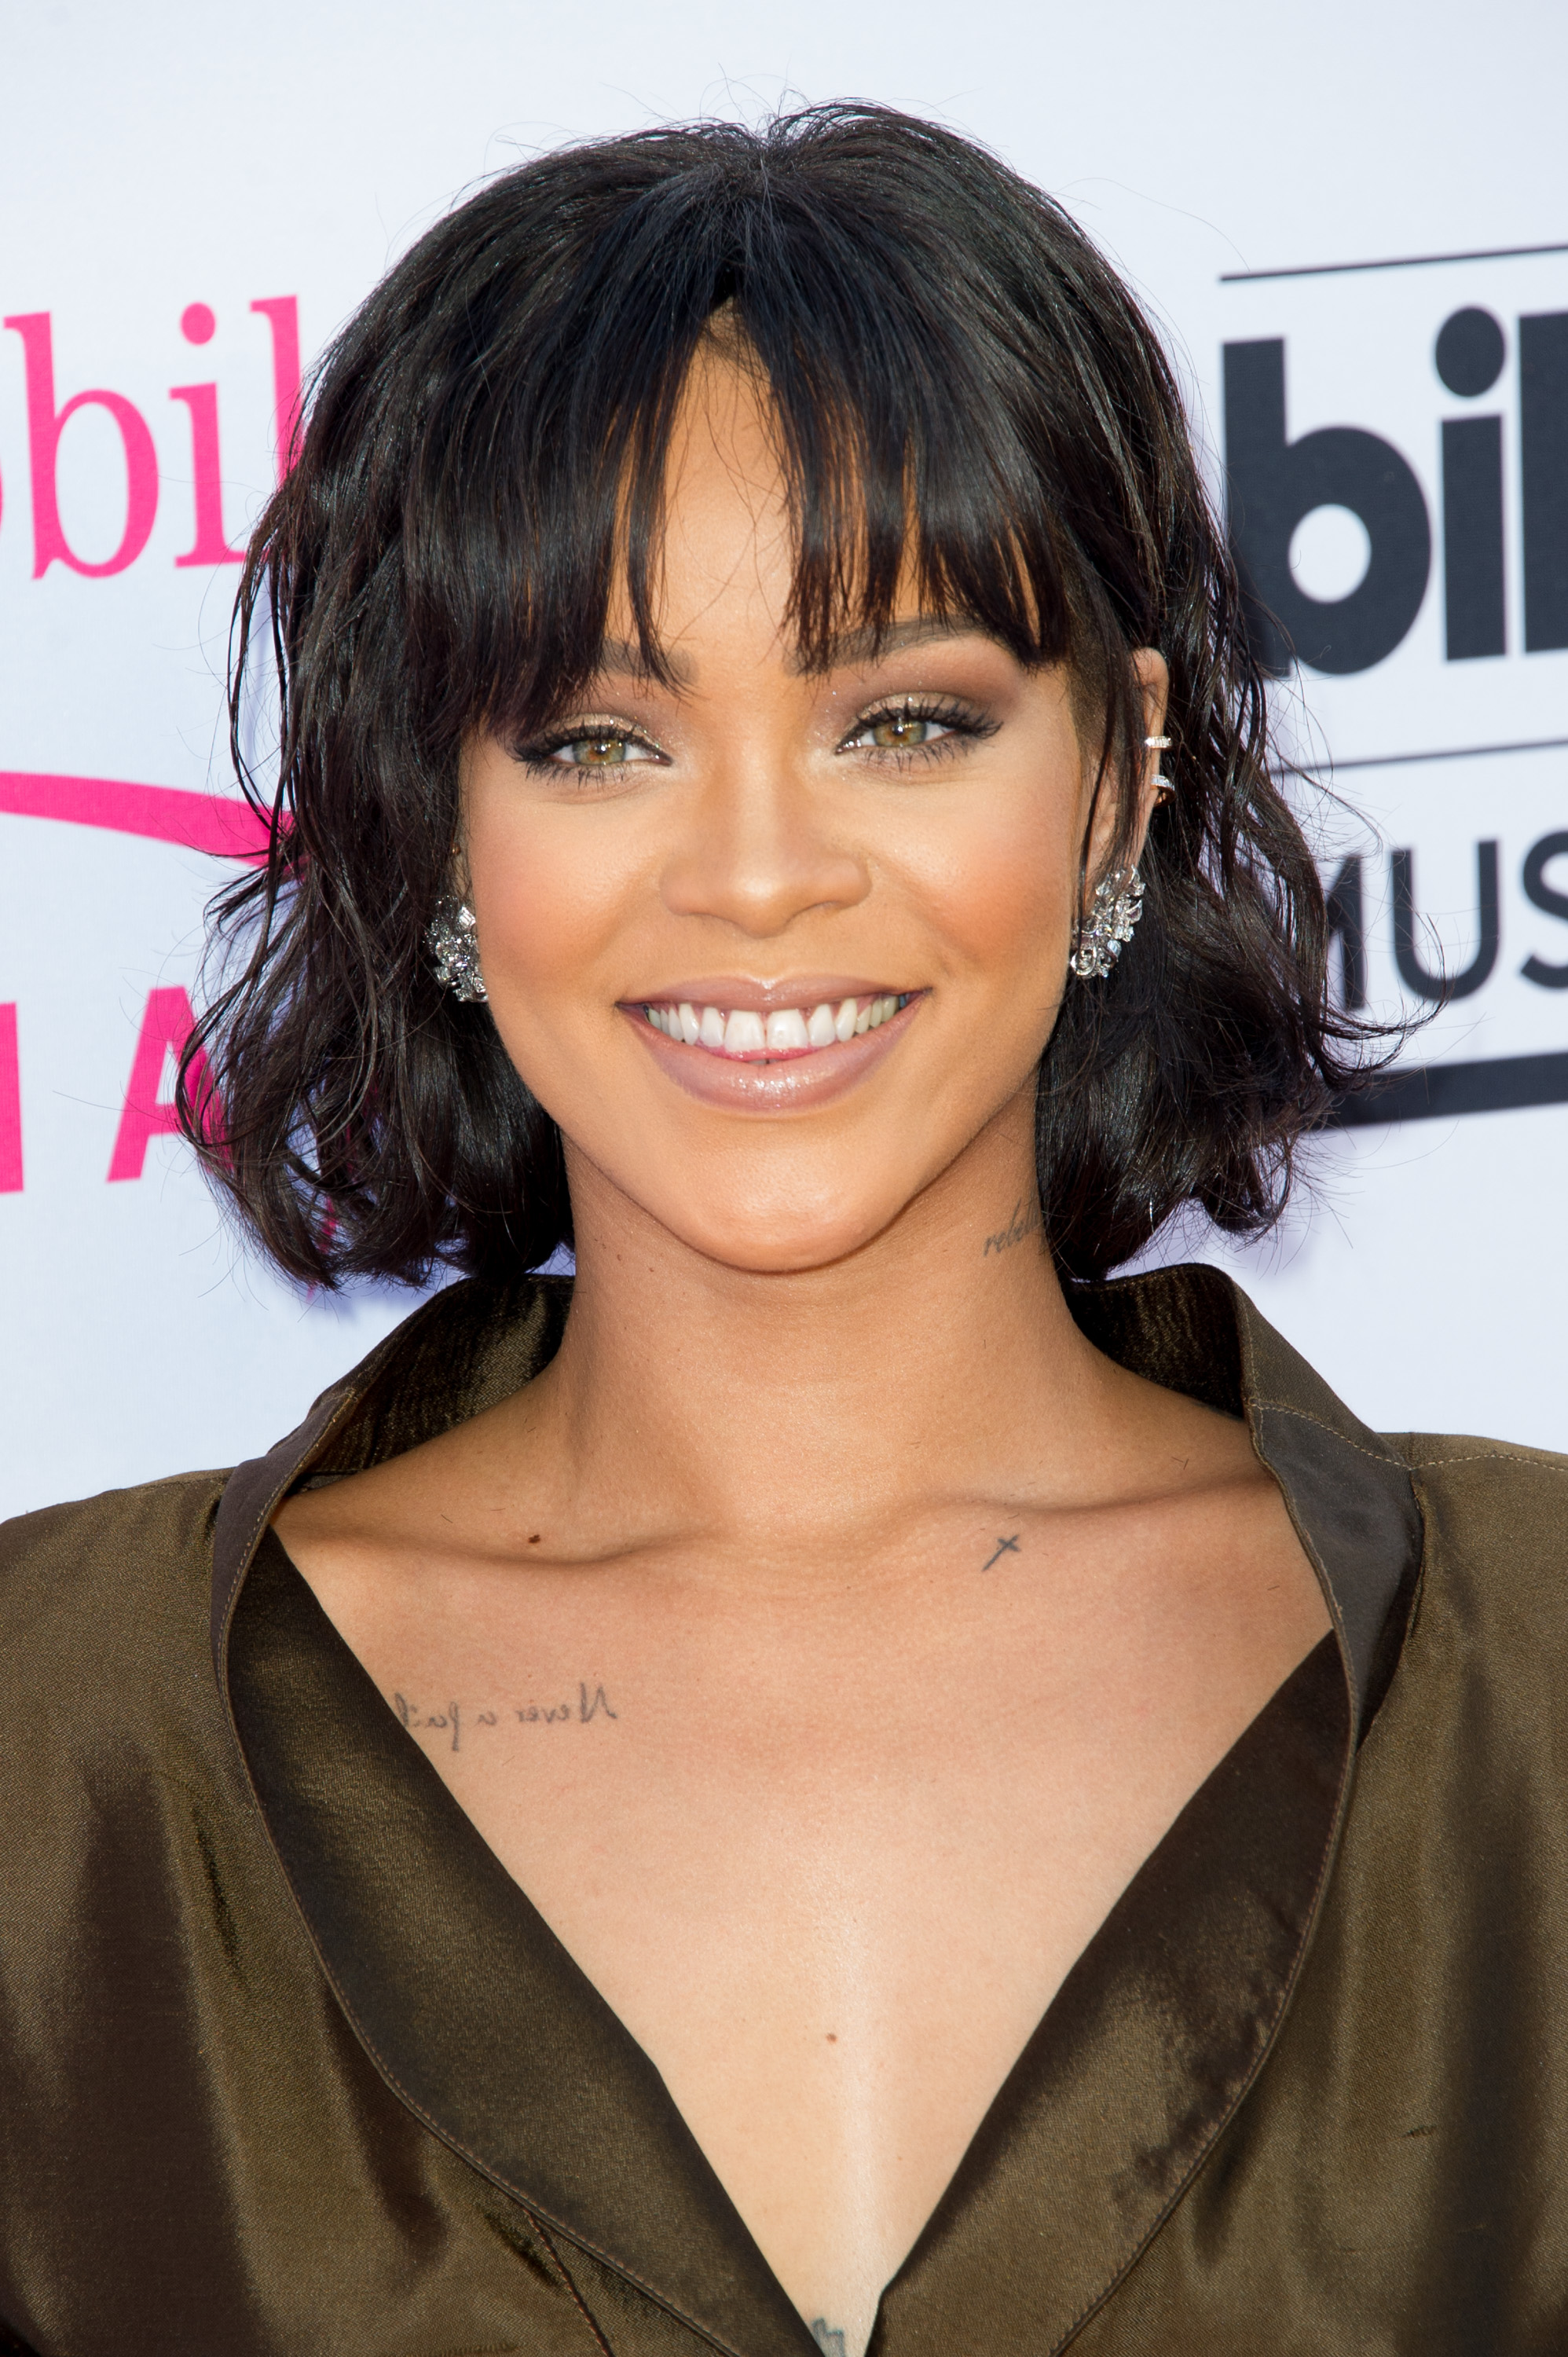 Pleasant 100 Hairstyles With Bangs You39Ll Want To Copy Celebrity Haircuts Short Hairstyles For Black Women Fulllsitofus